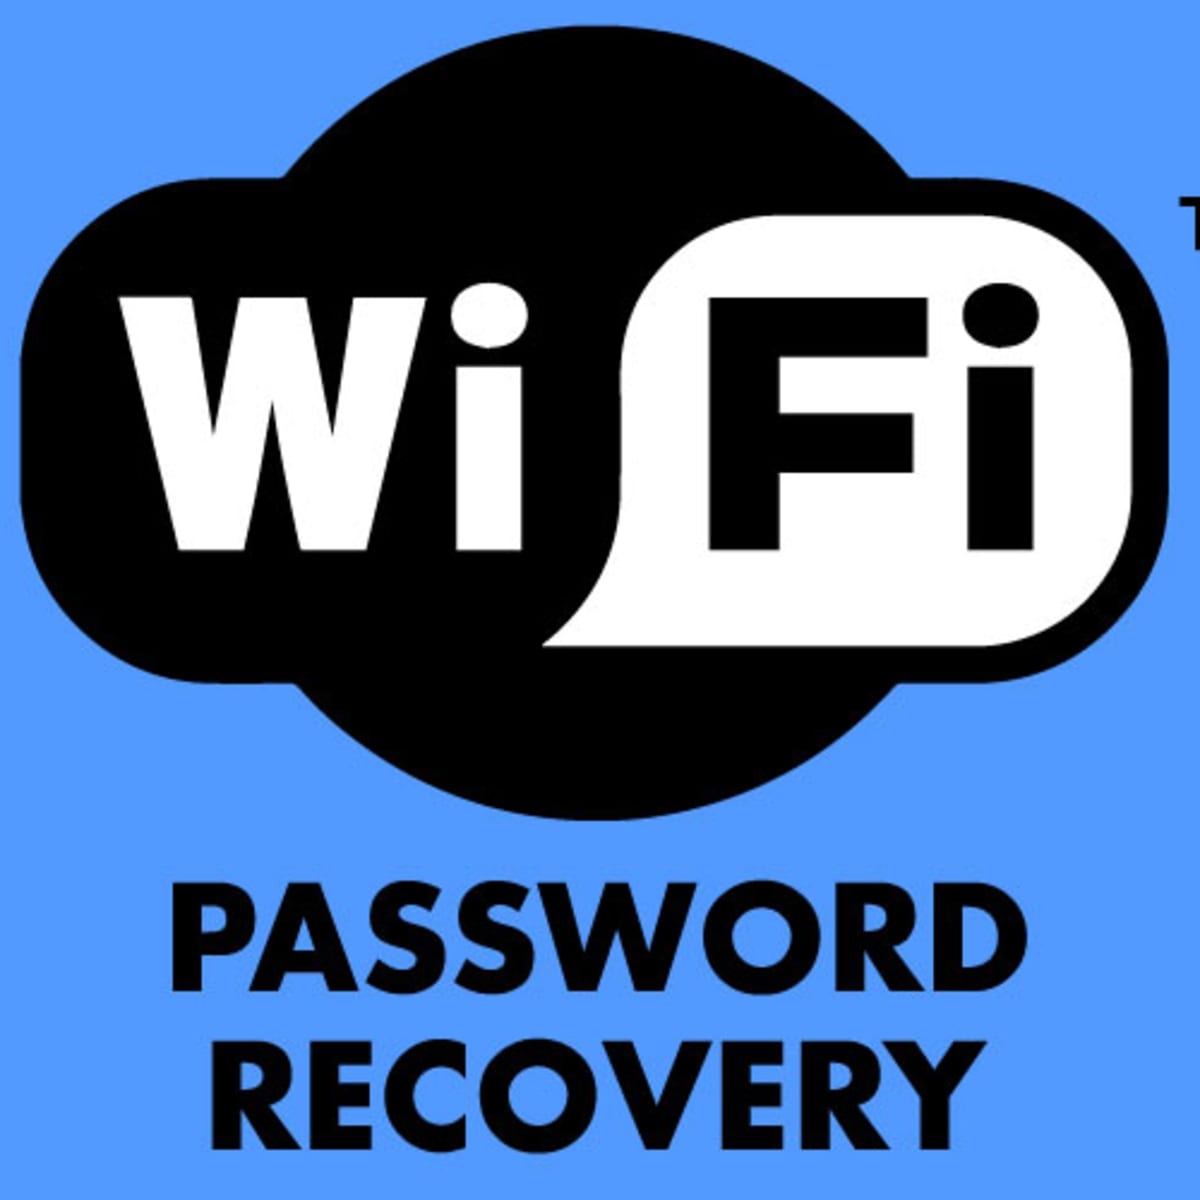 How To Recover Wifi Password On Android Without Root Hubpages